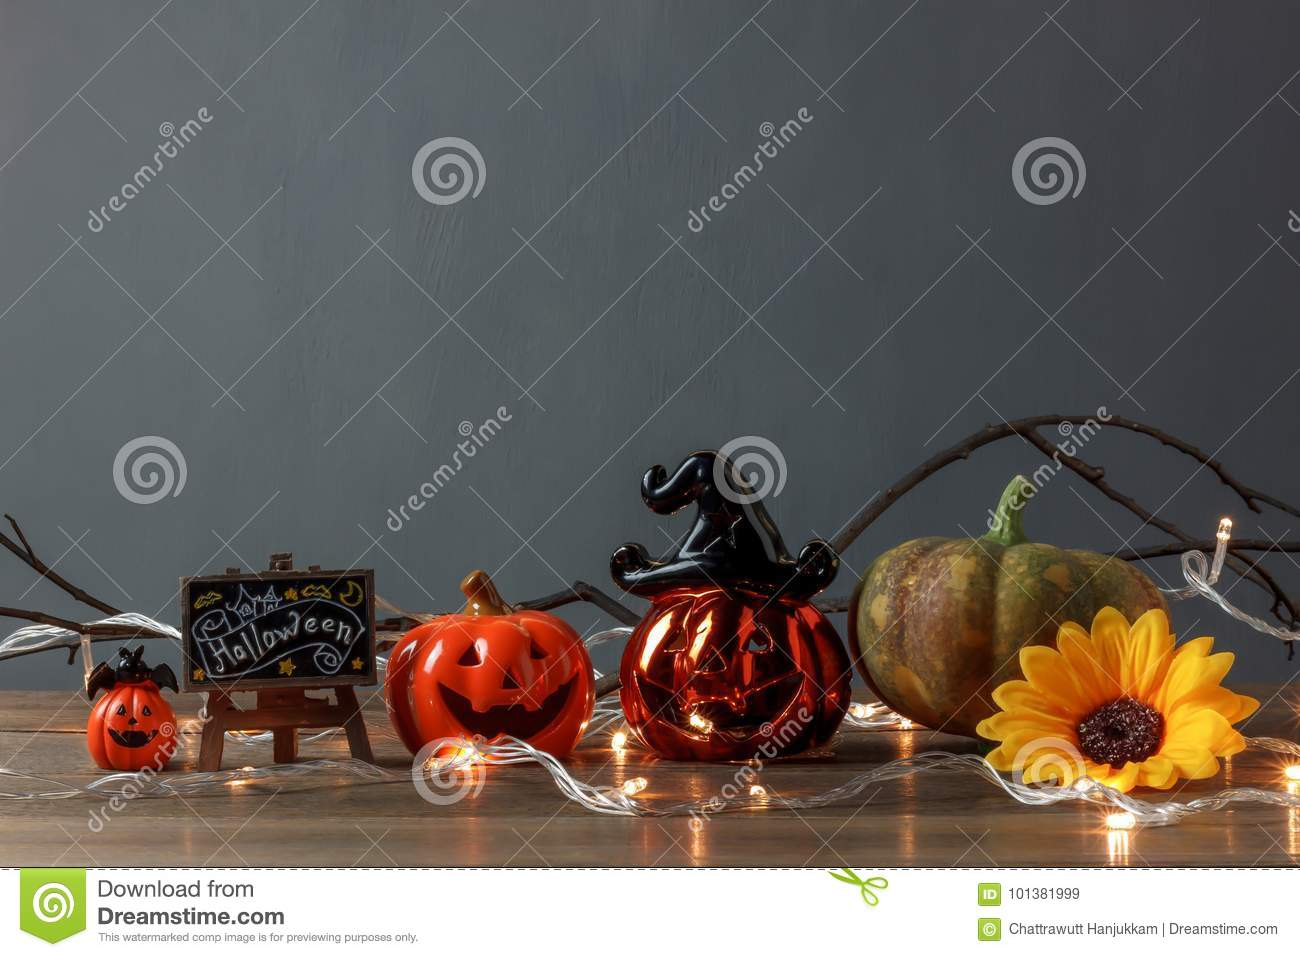 Accessory of Happy Halloween Festival concept.Essential decorations